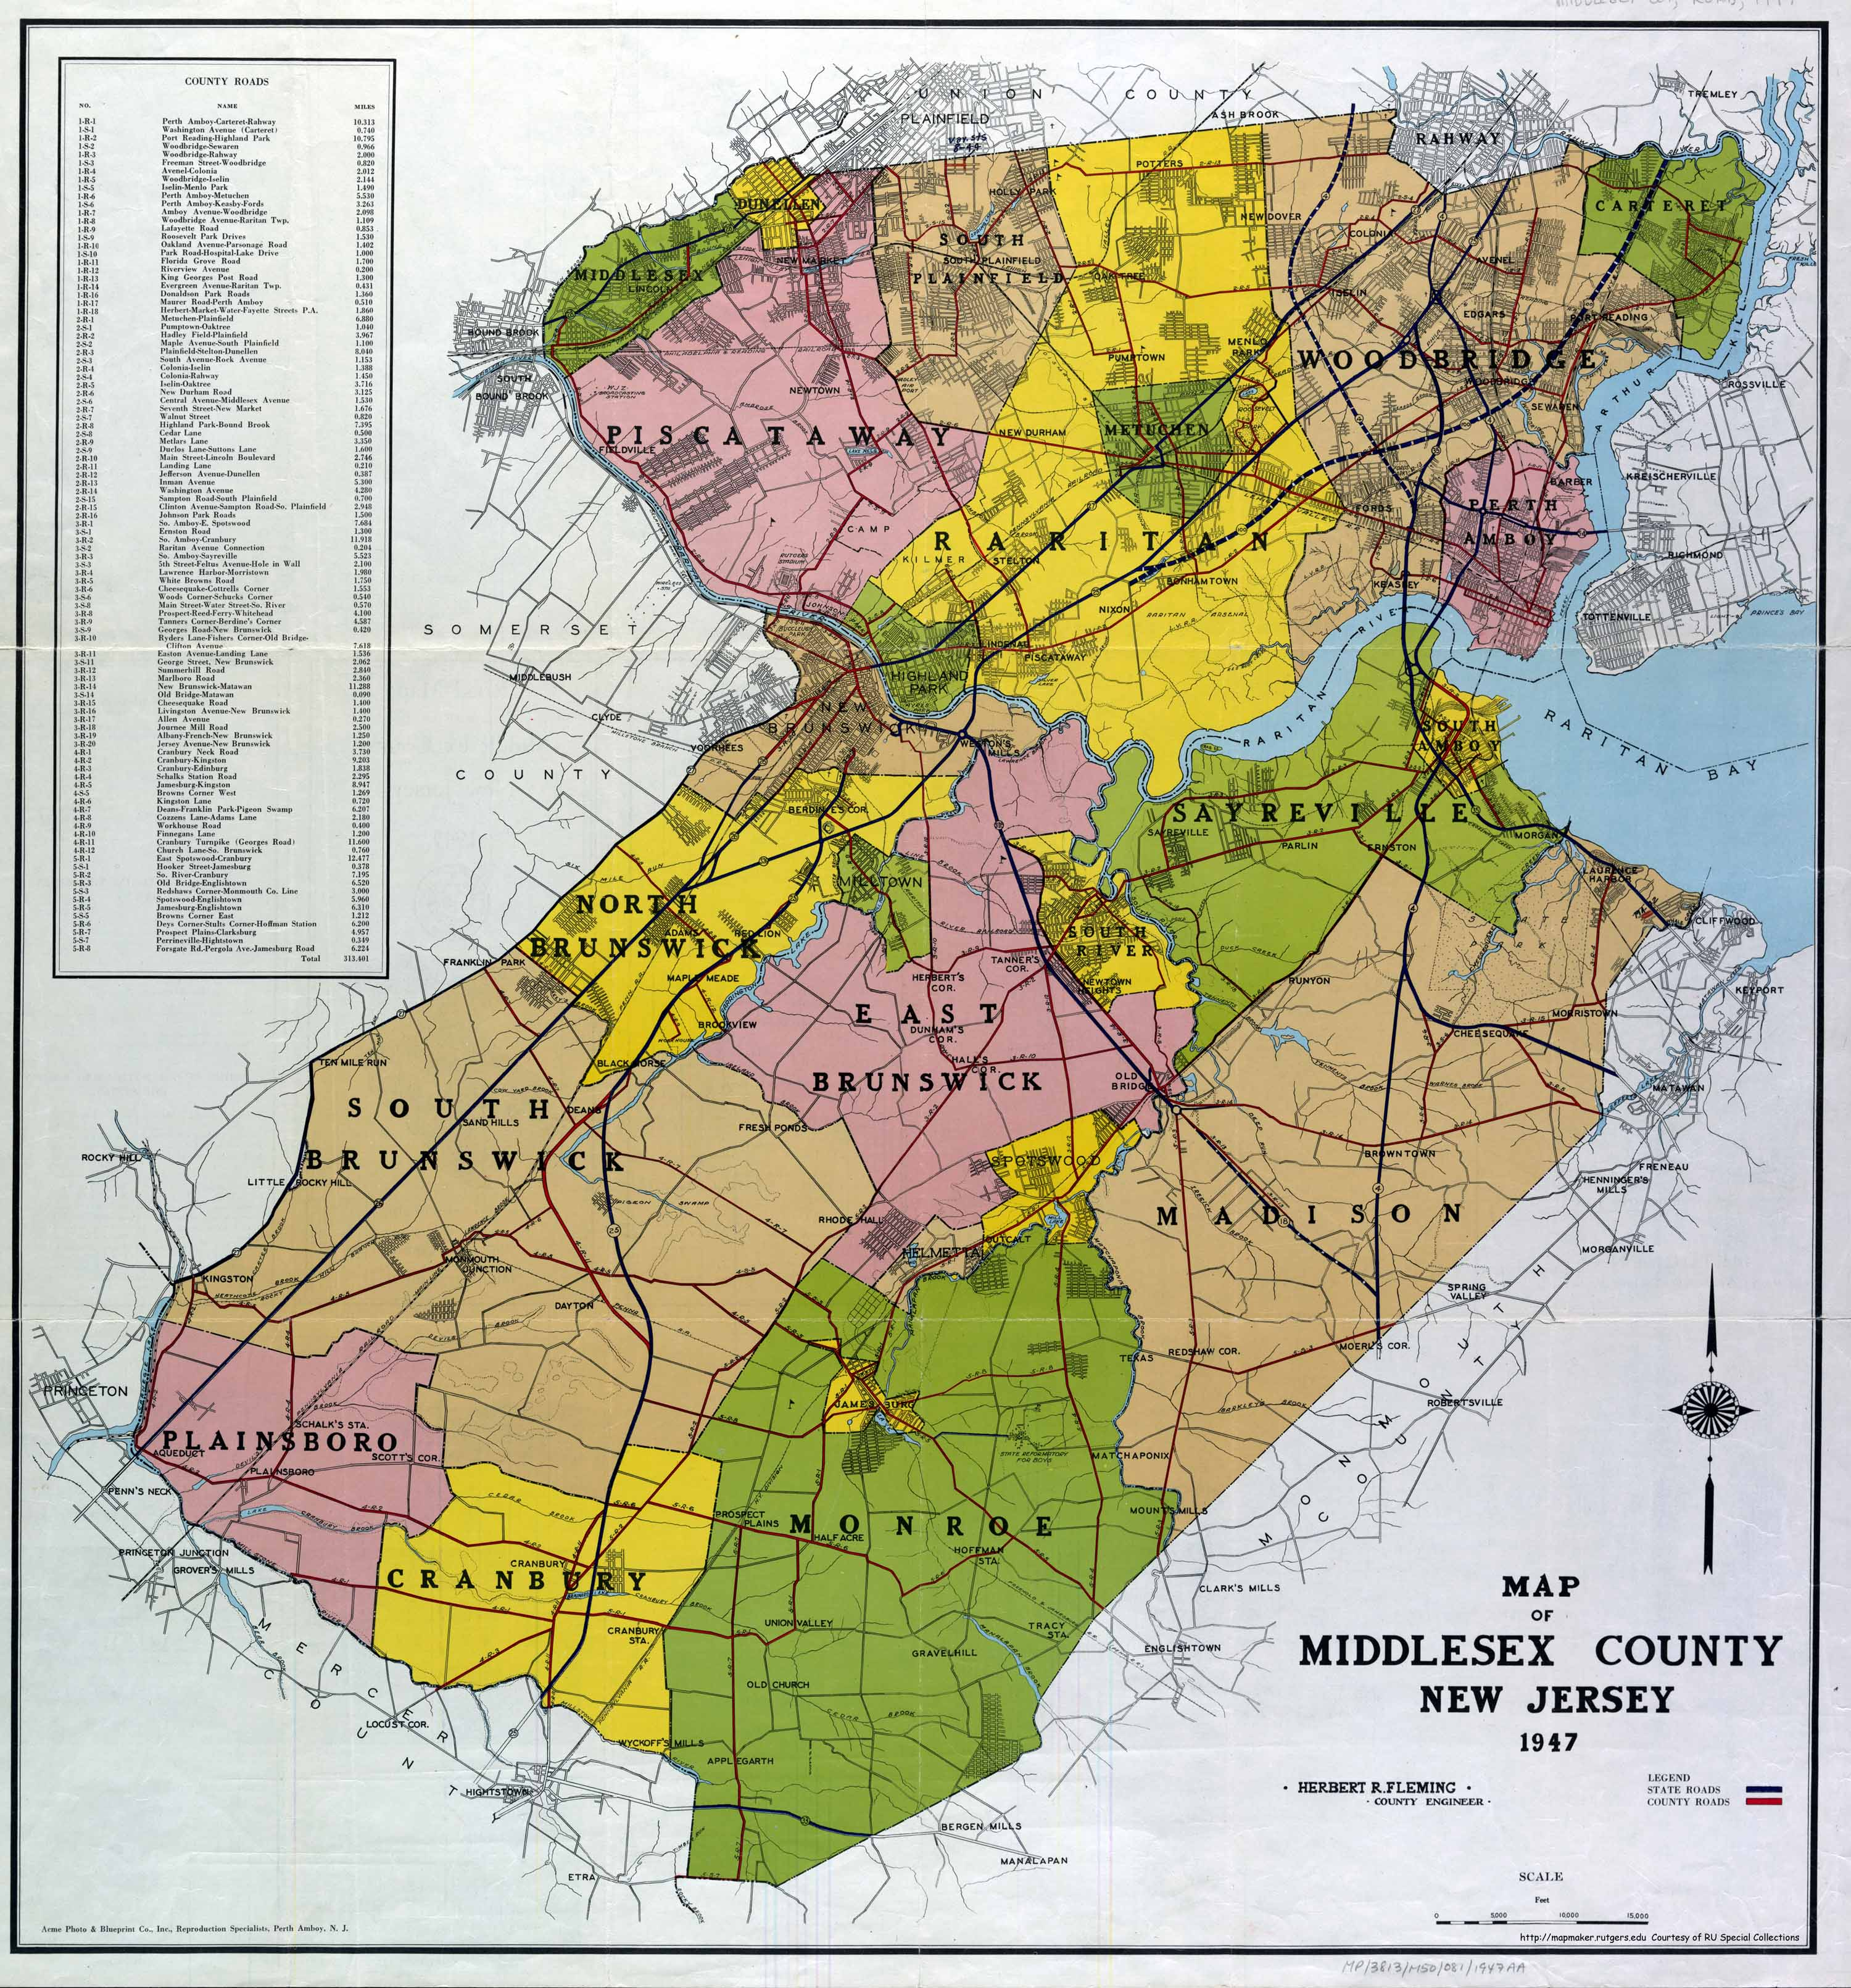 Historic Middlesex County Maps - Nj road map